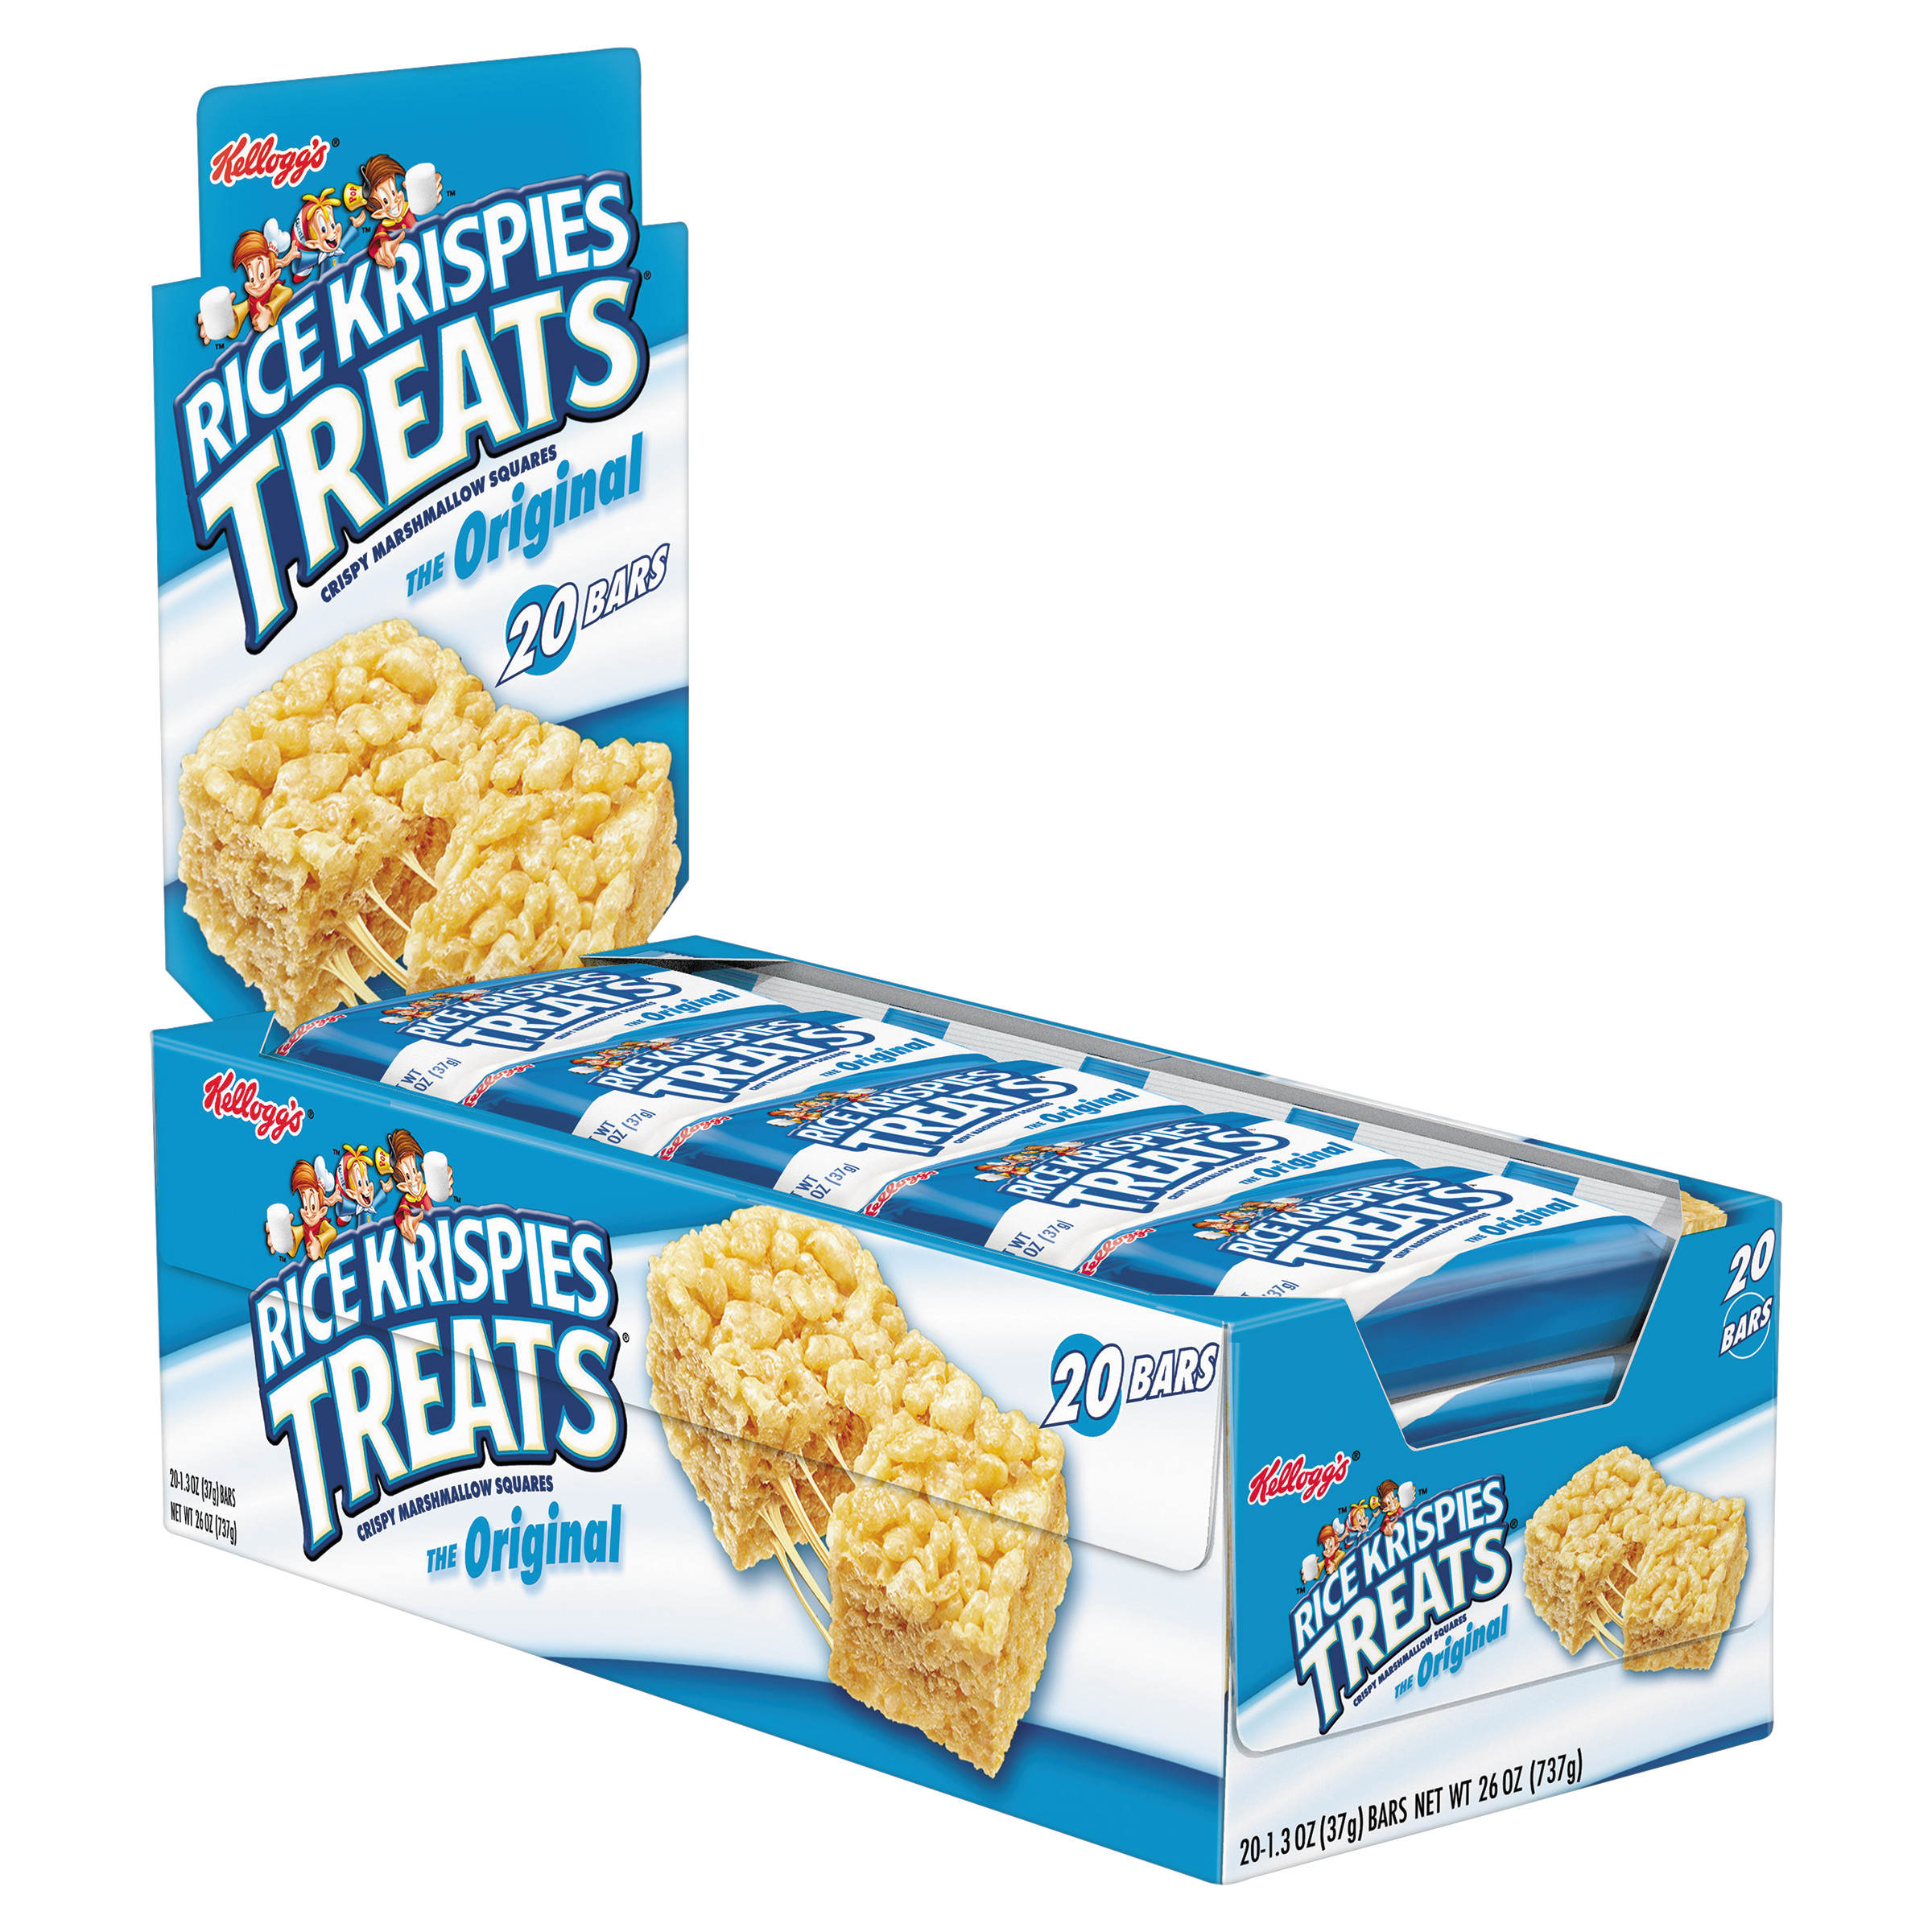 Kellogg's Rice Krispies Treats Original Marshmallow Bars, 1.3 oz 20 Ct (Single Serve Pks)